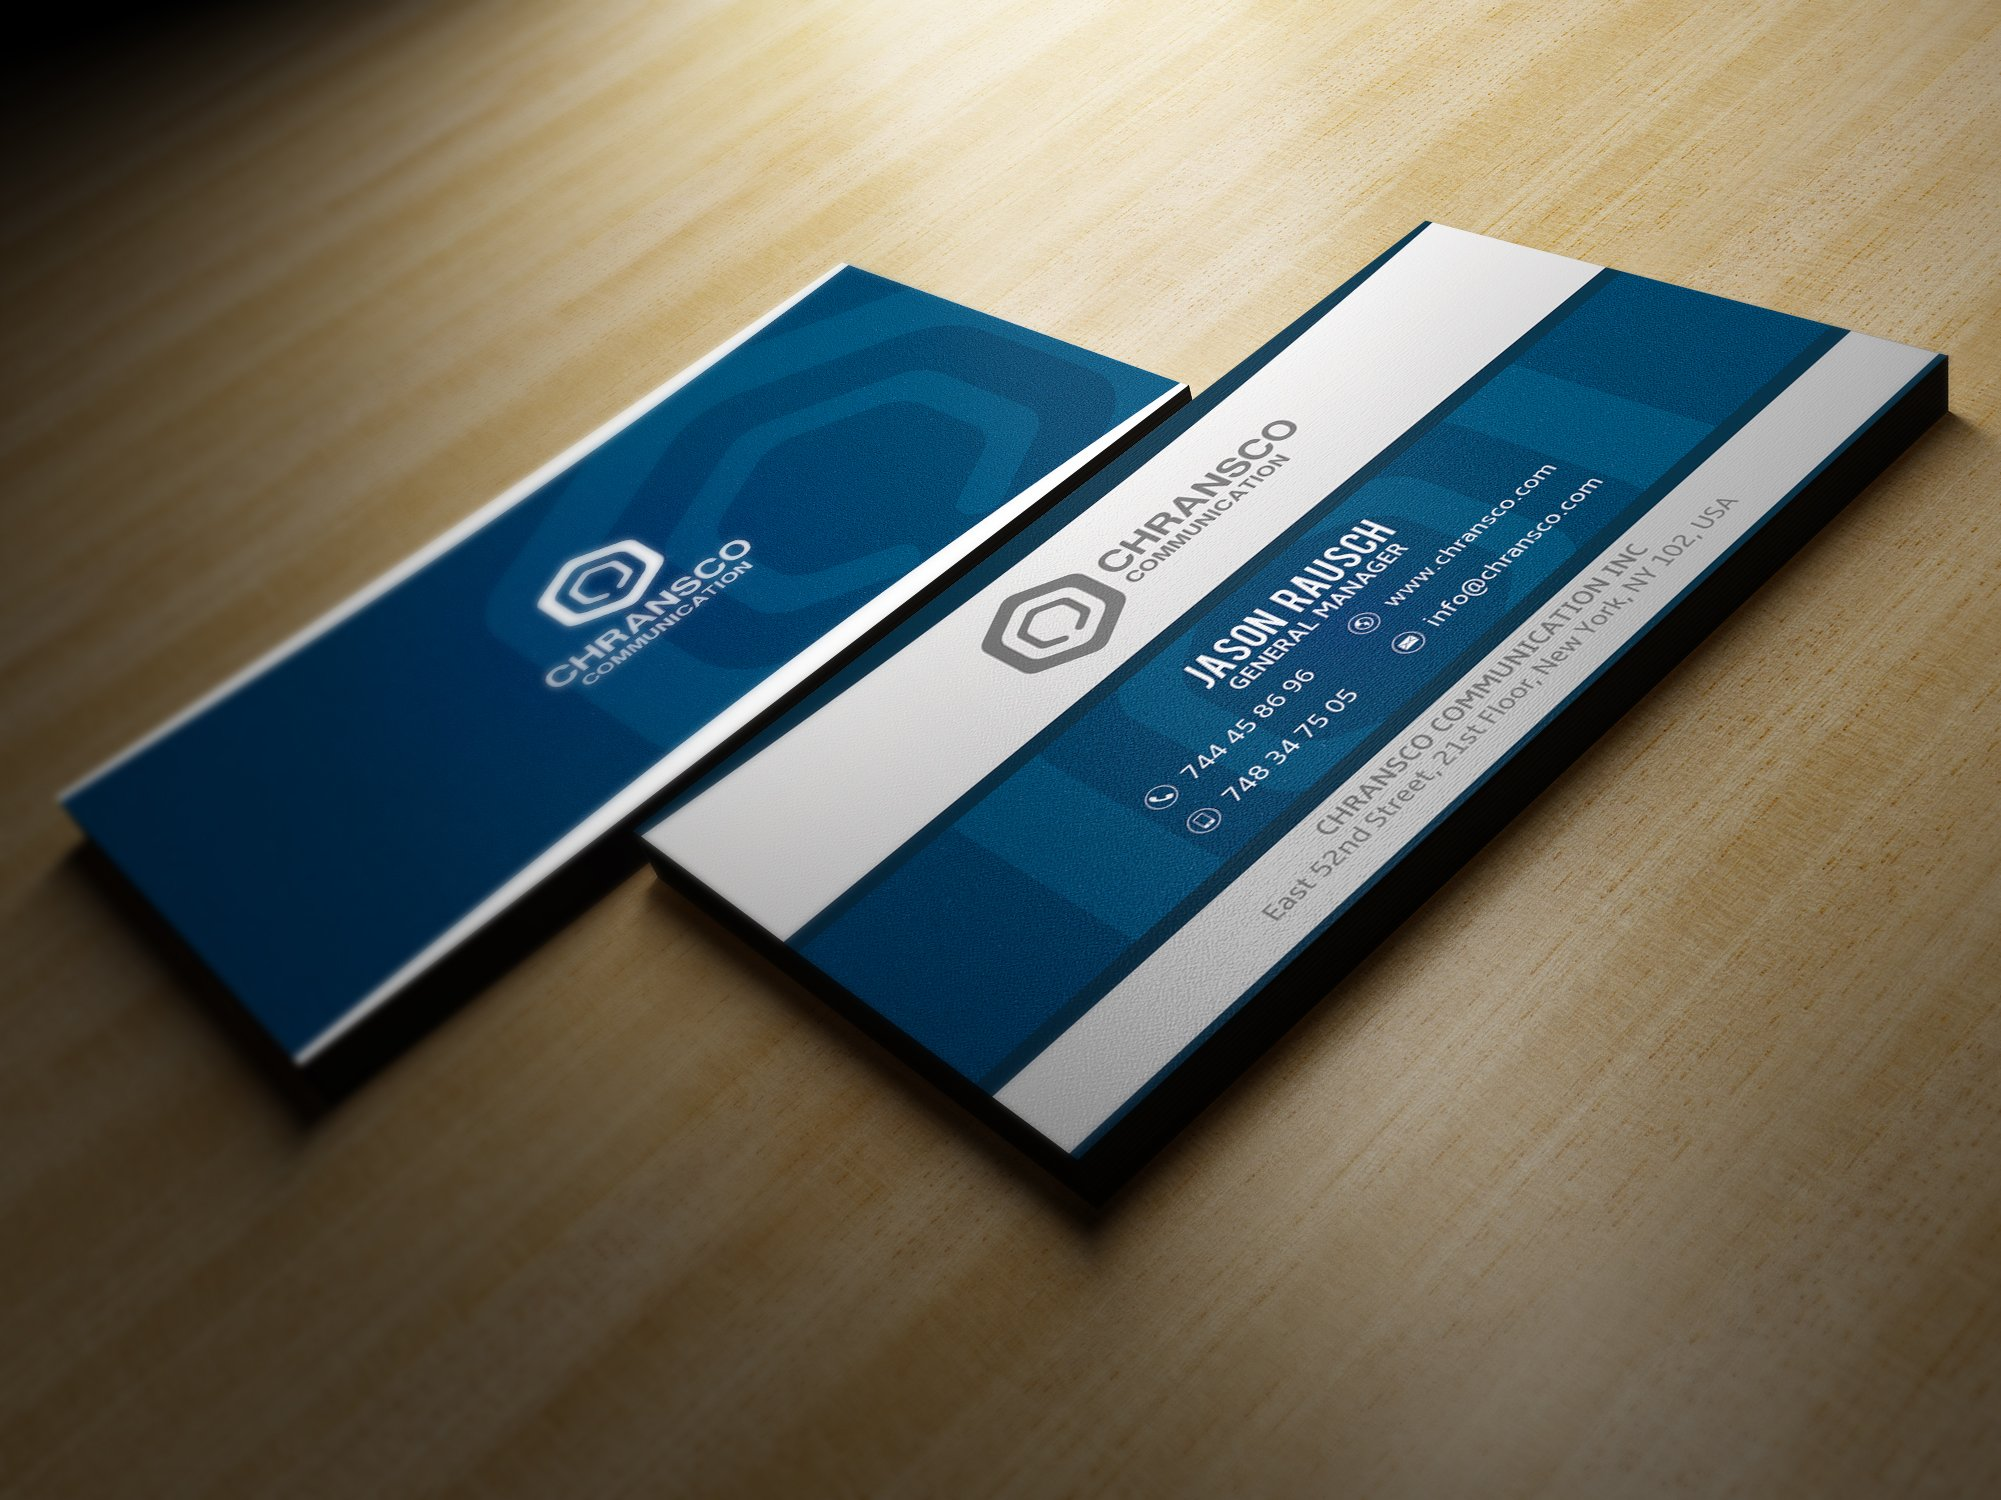 White And Blue Business Card ~ Business Card Templates ~ Creative ...